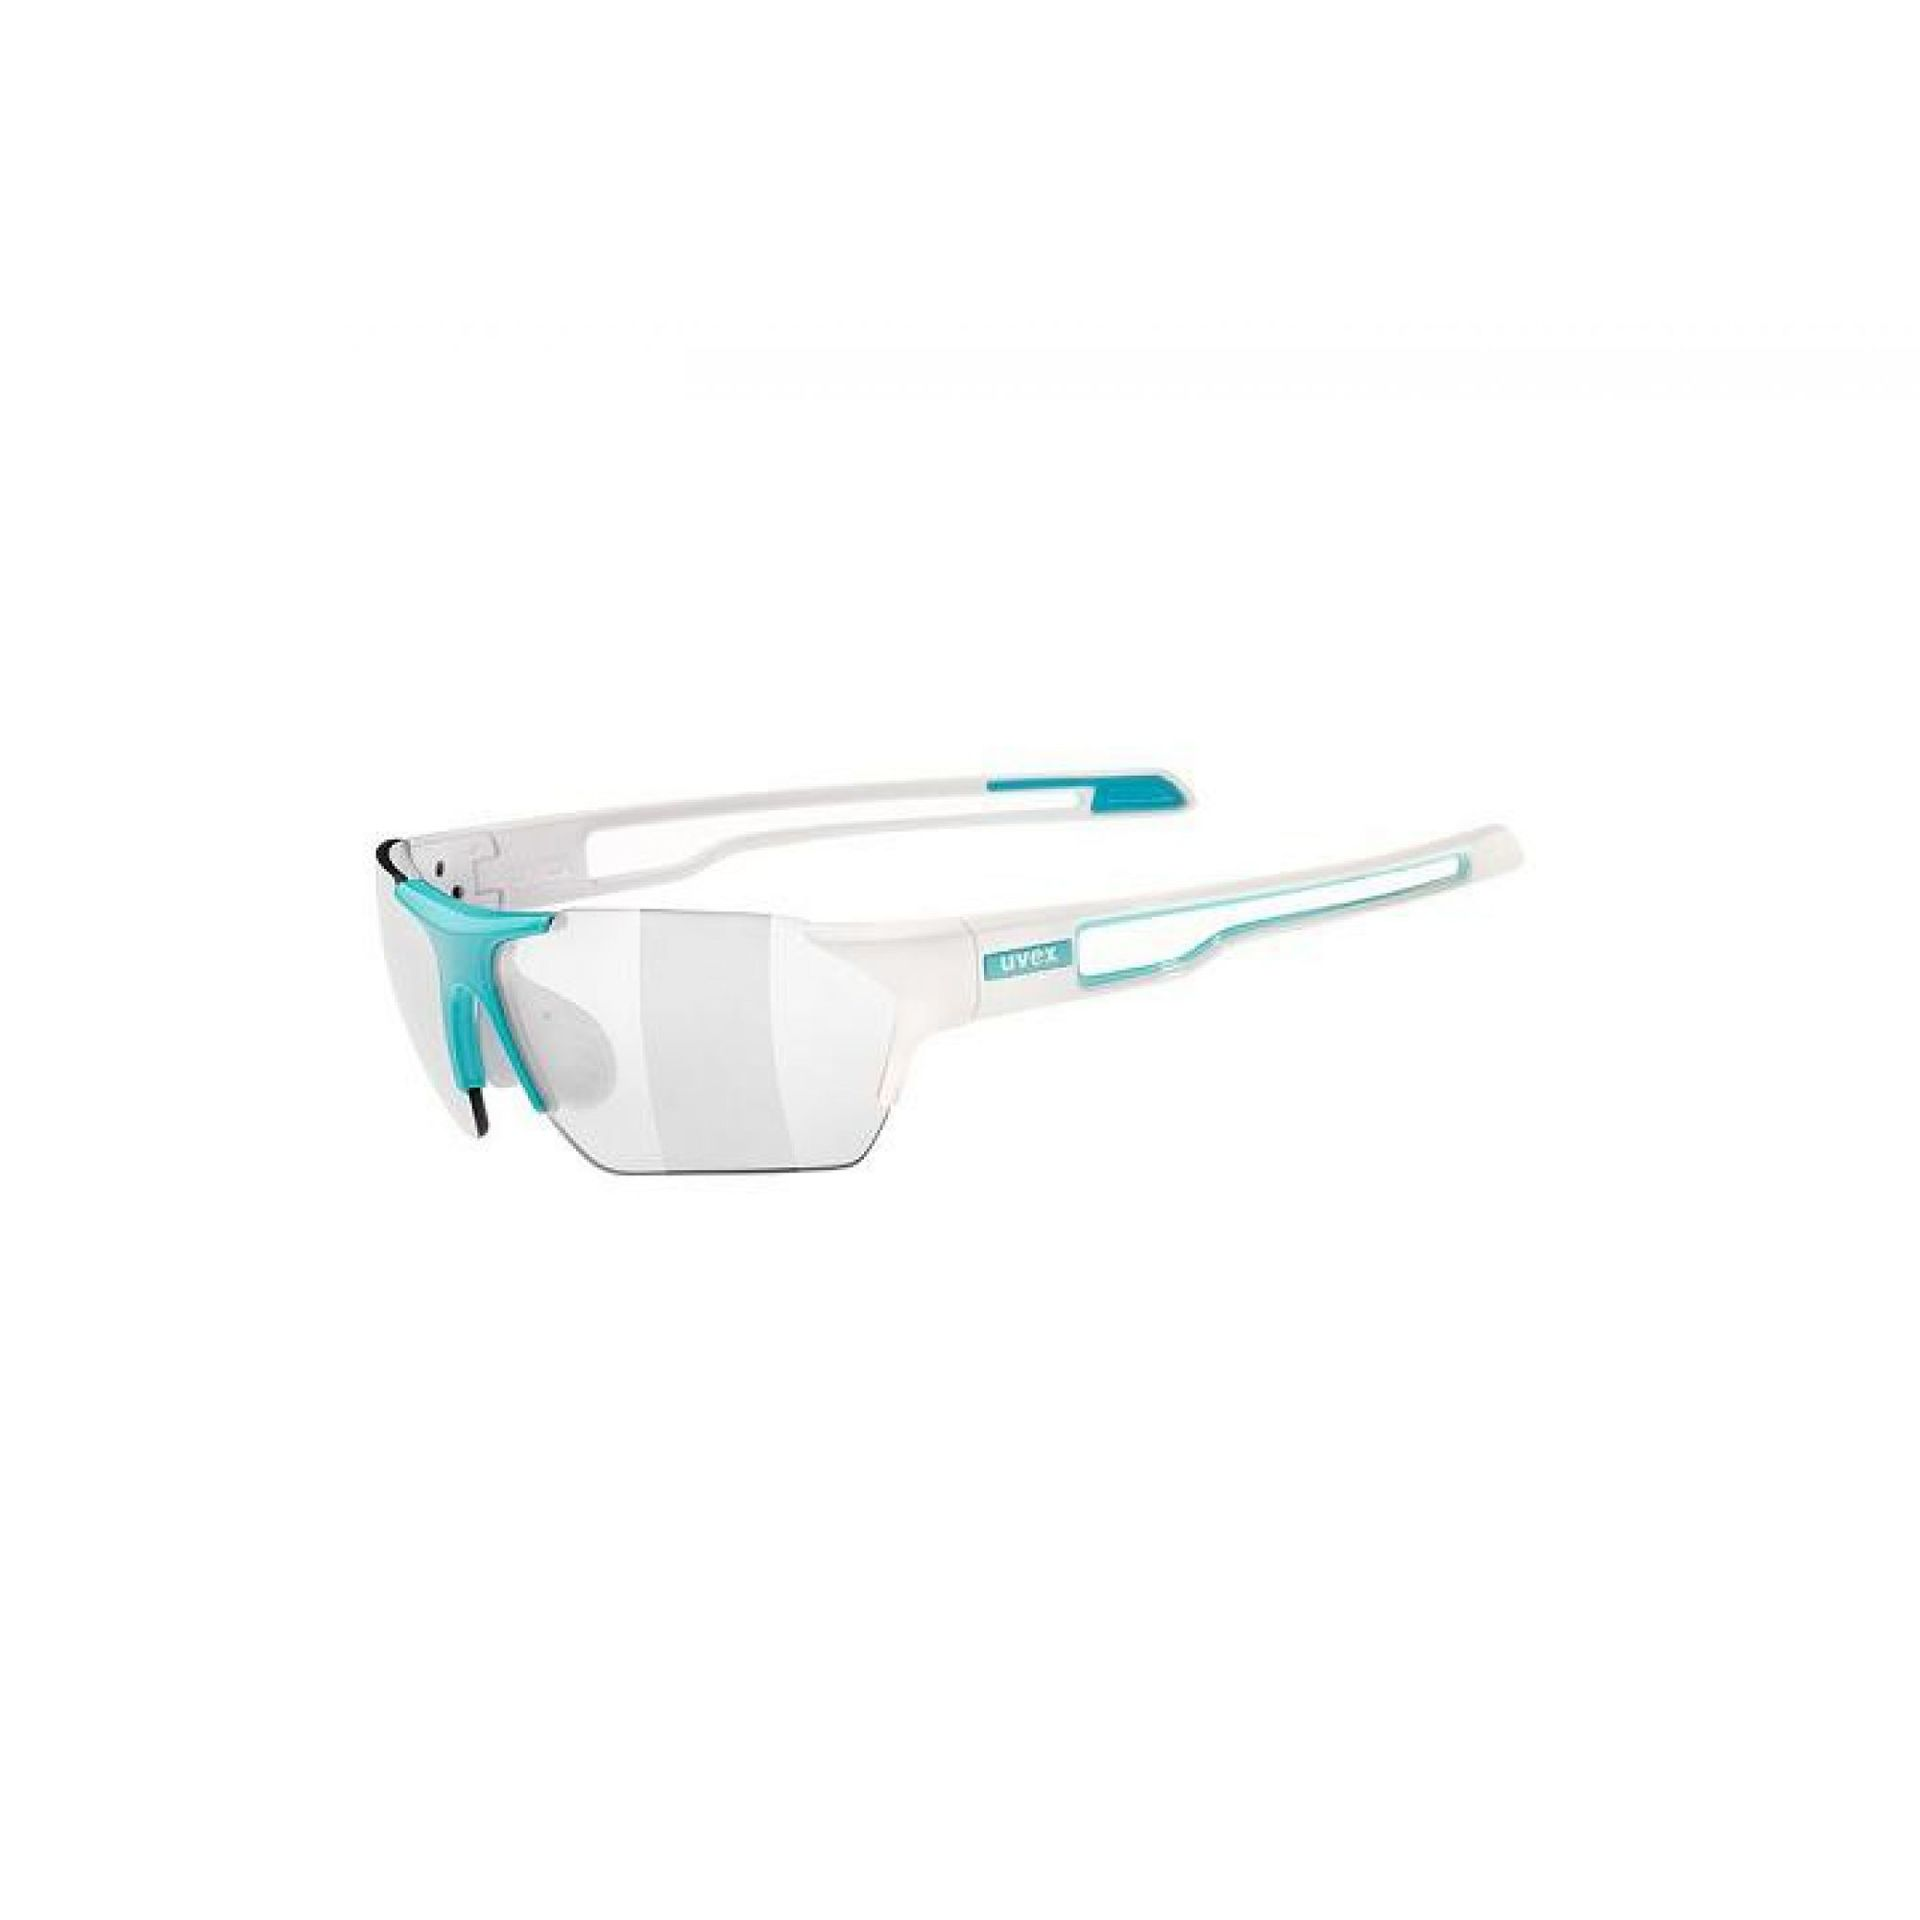 OKULARY UVEX SPORTSTYLE 202 SMALL VARIO WHITE BLUE